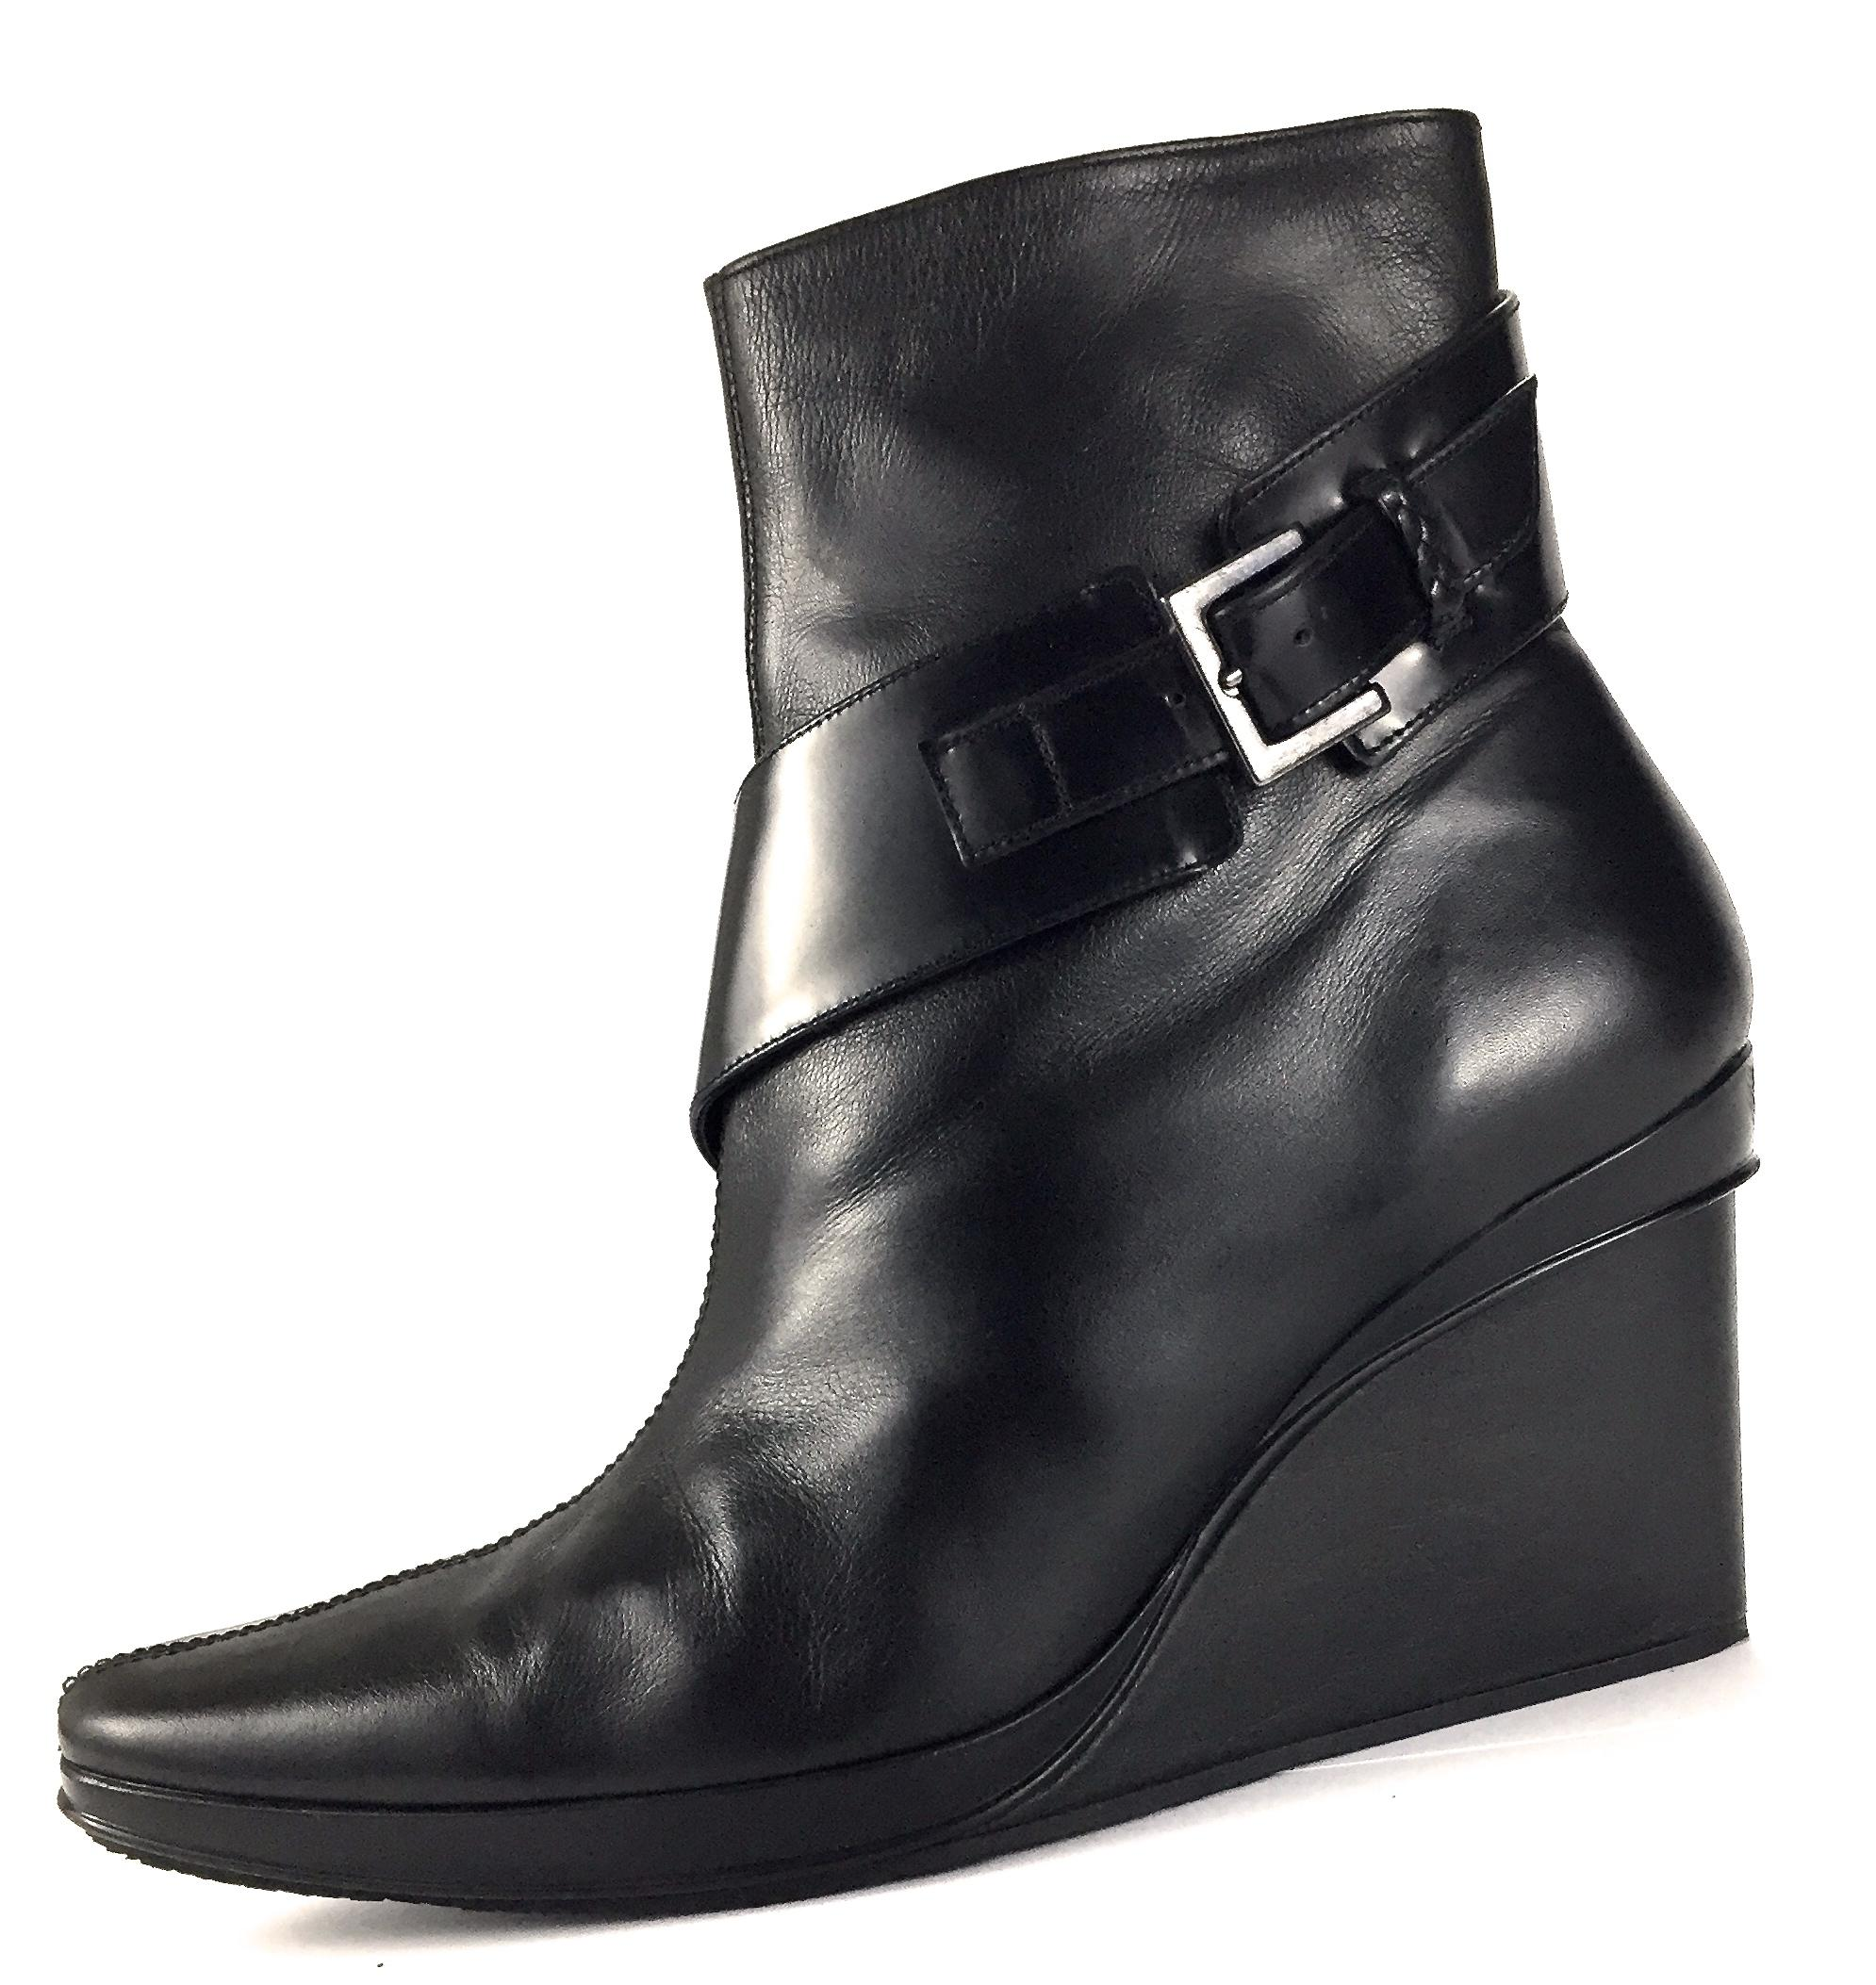 Stephane Kélian Leather Wedge Boots